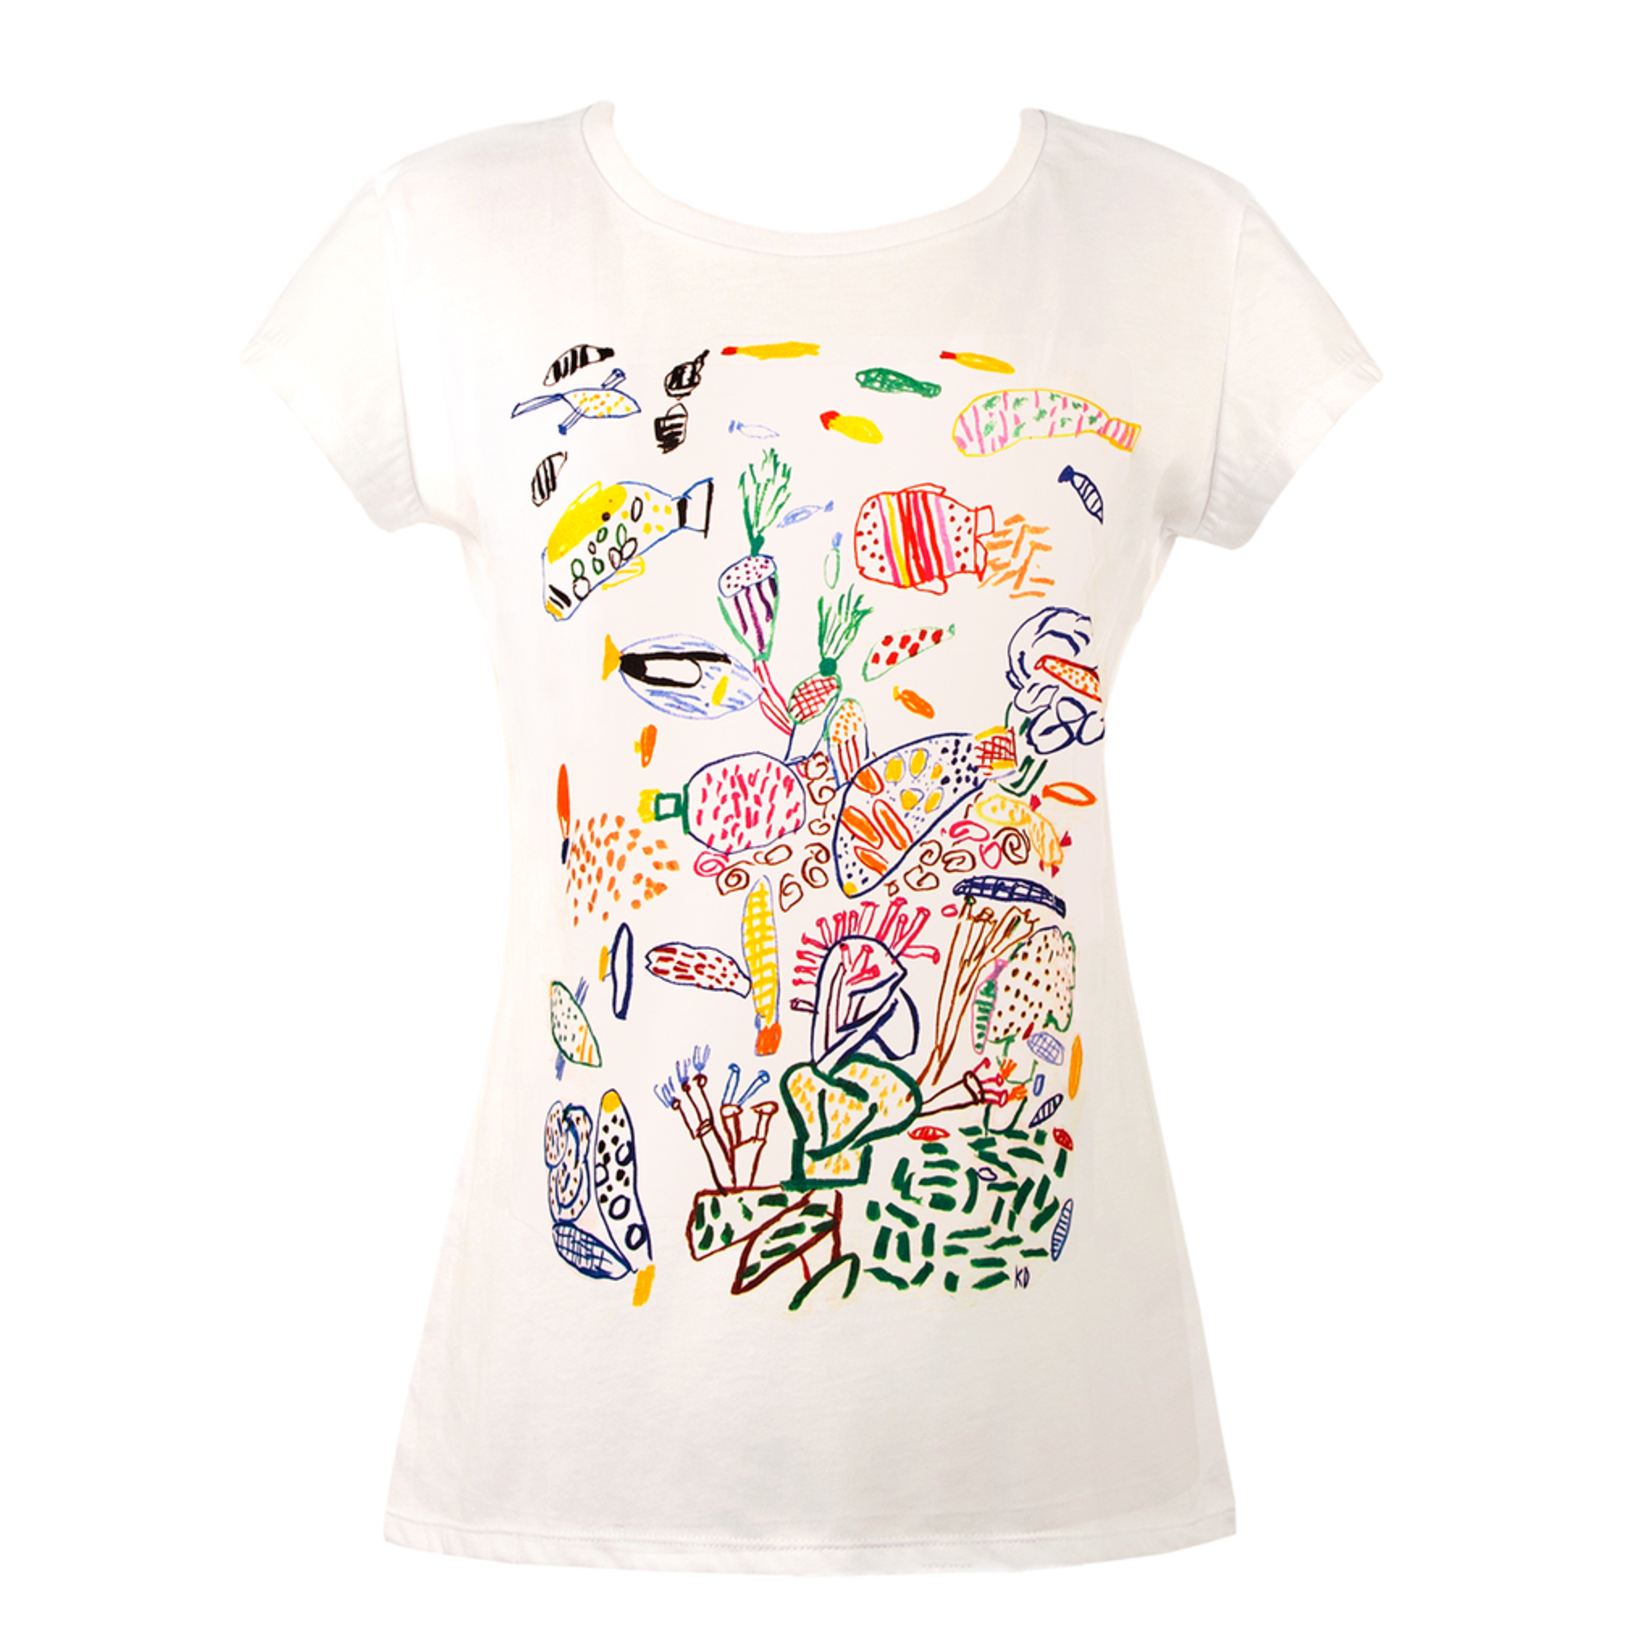 Clothing Tshirt - Fitted - Reef Drawing White